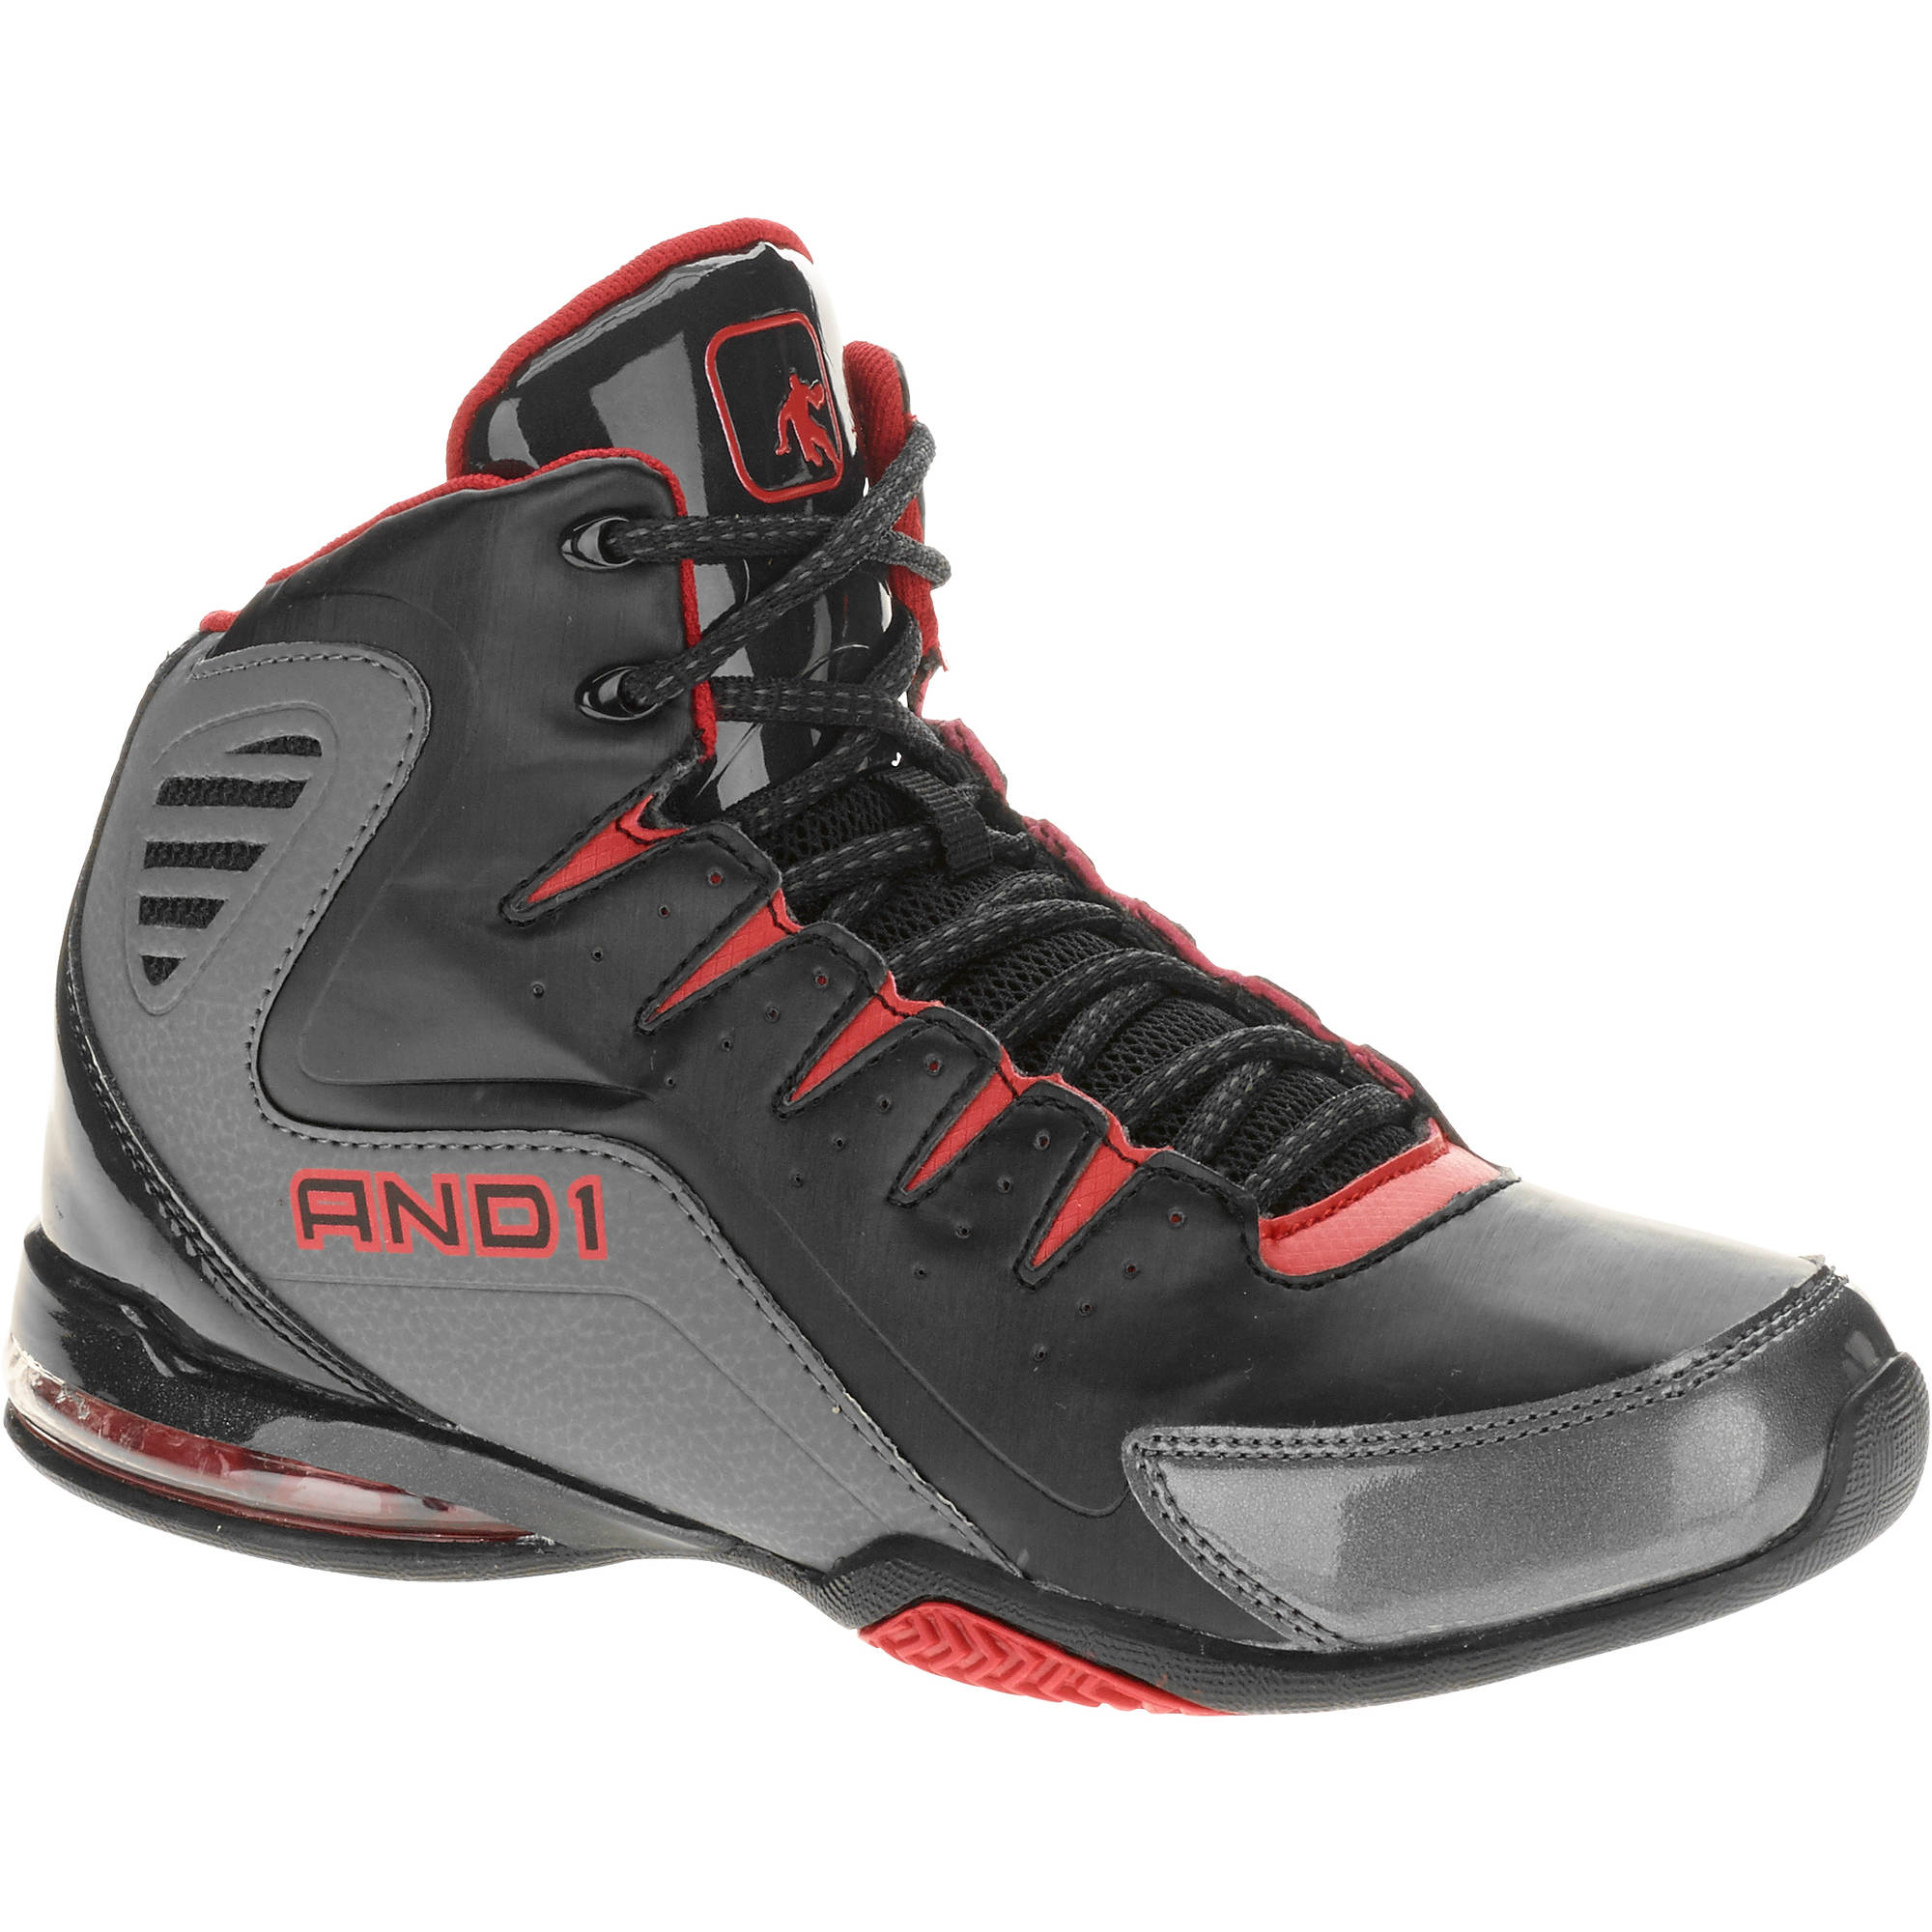 AND1 Men's Knight High-top Basketball Shoe